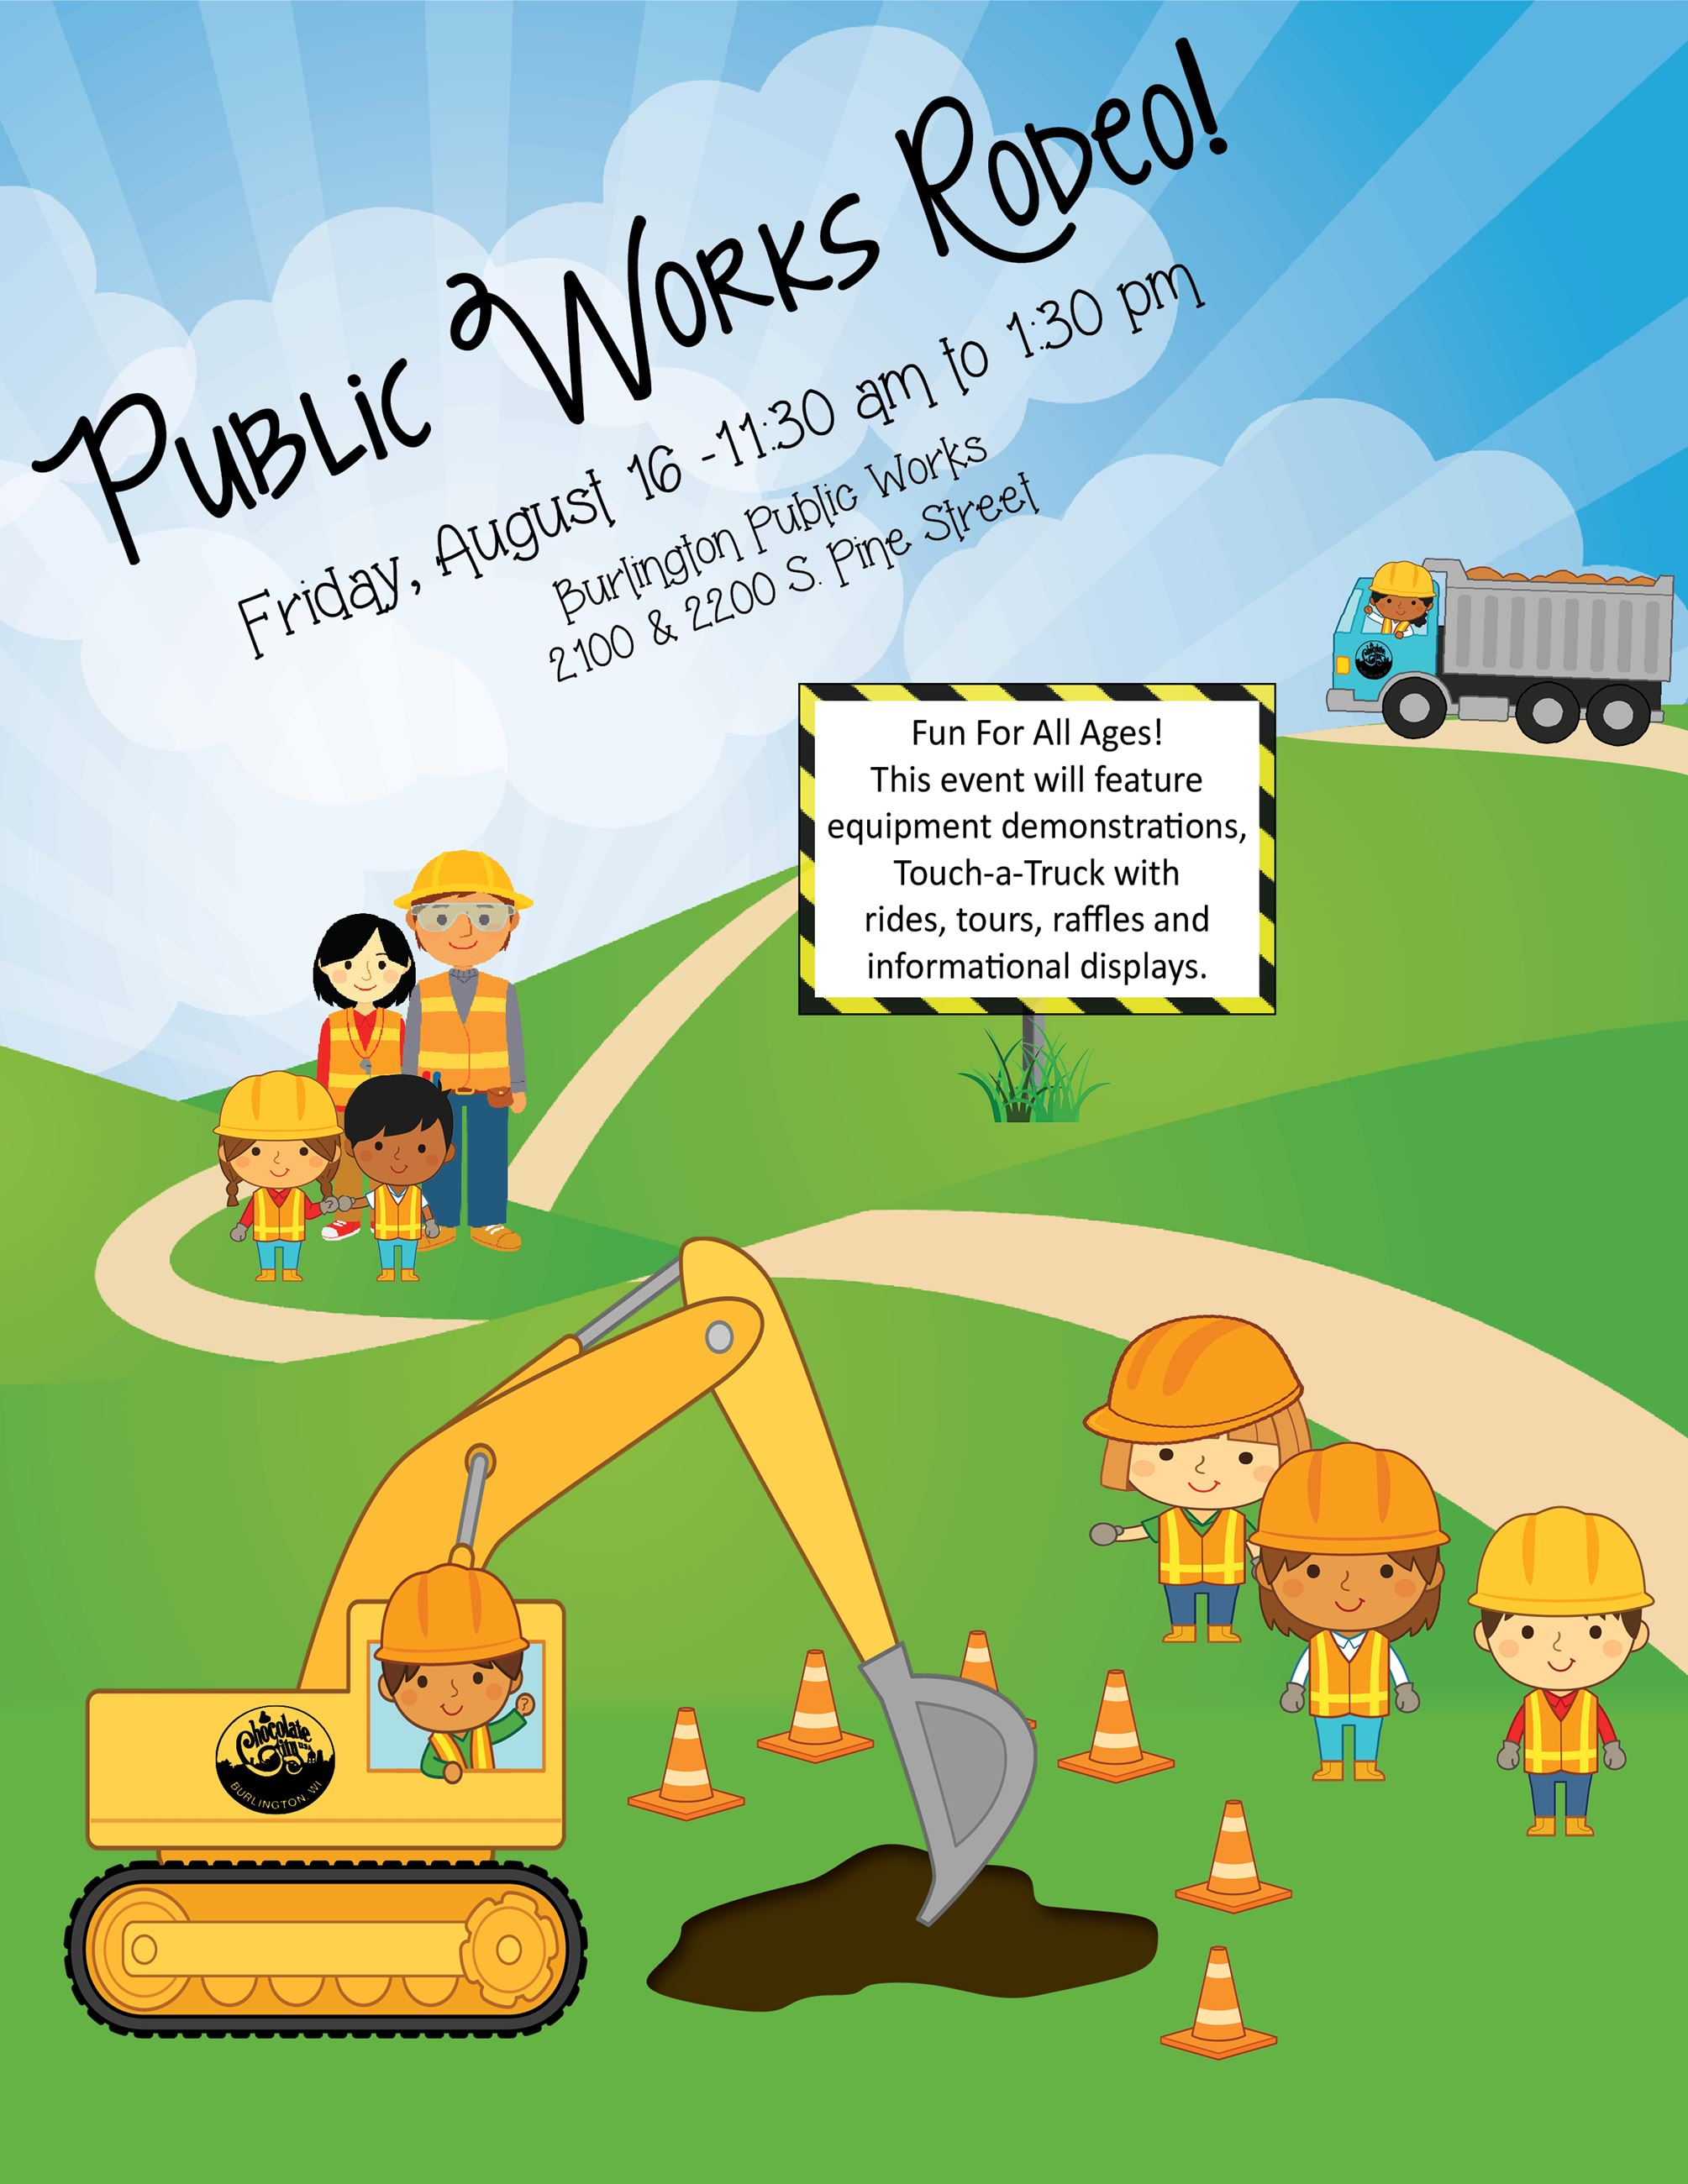 public works rodeo 2019